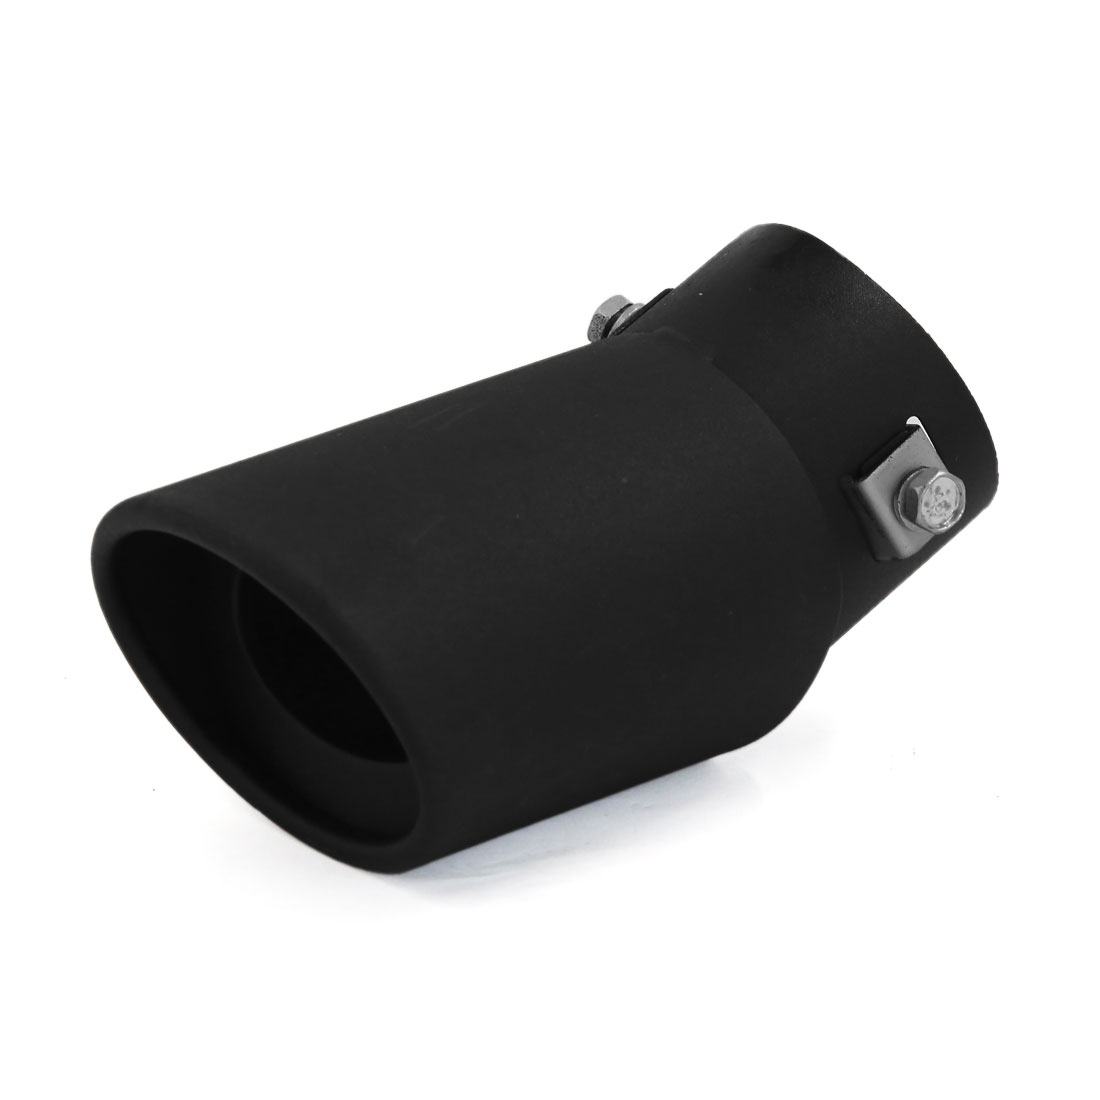 Black Metal Exhaust Muffler Tip Pipe Modified Silencer for Auto Car